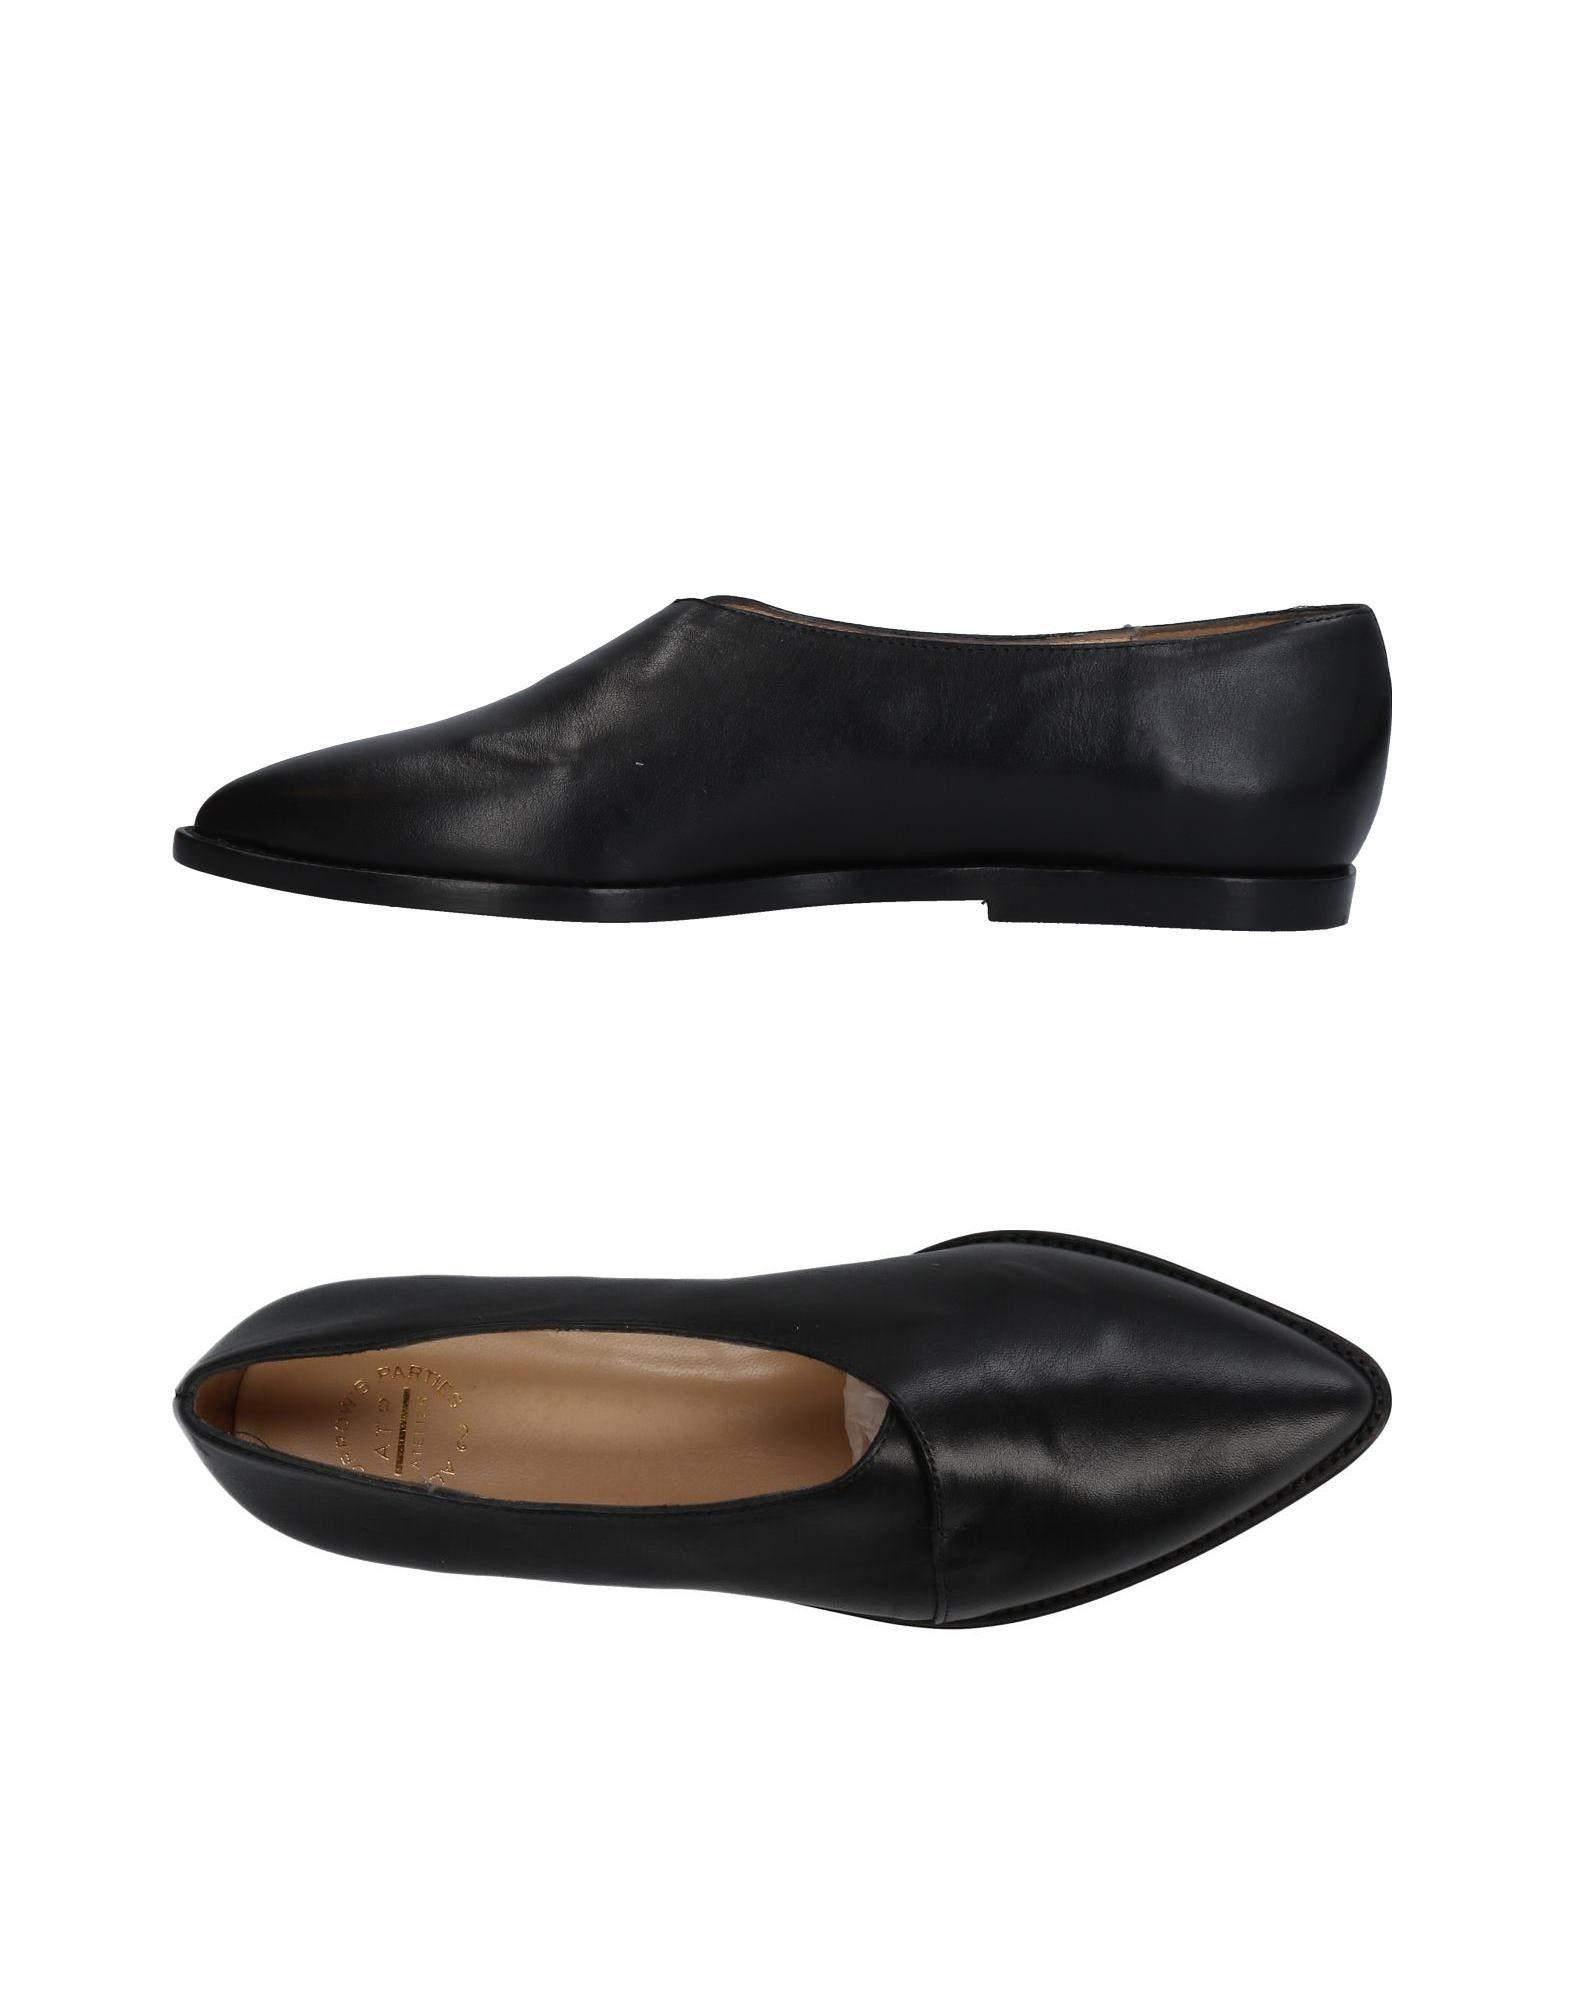 Atp Atelier Loafers In Black